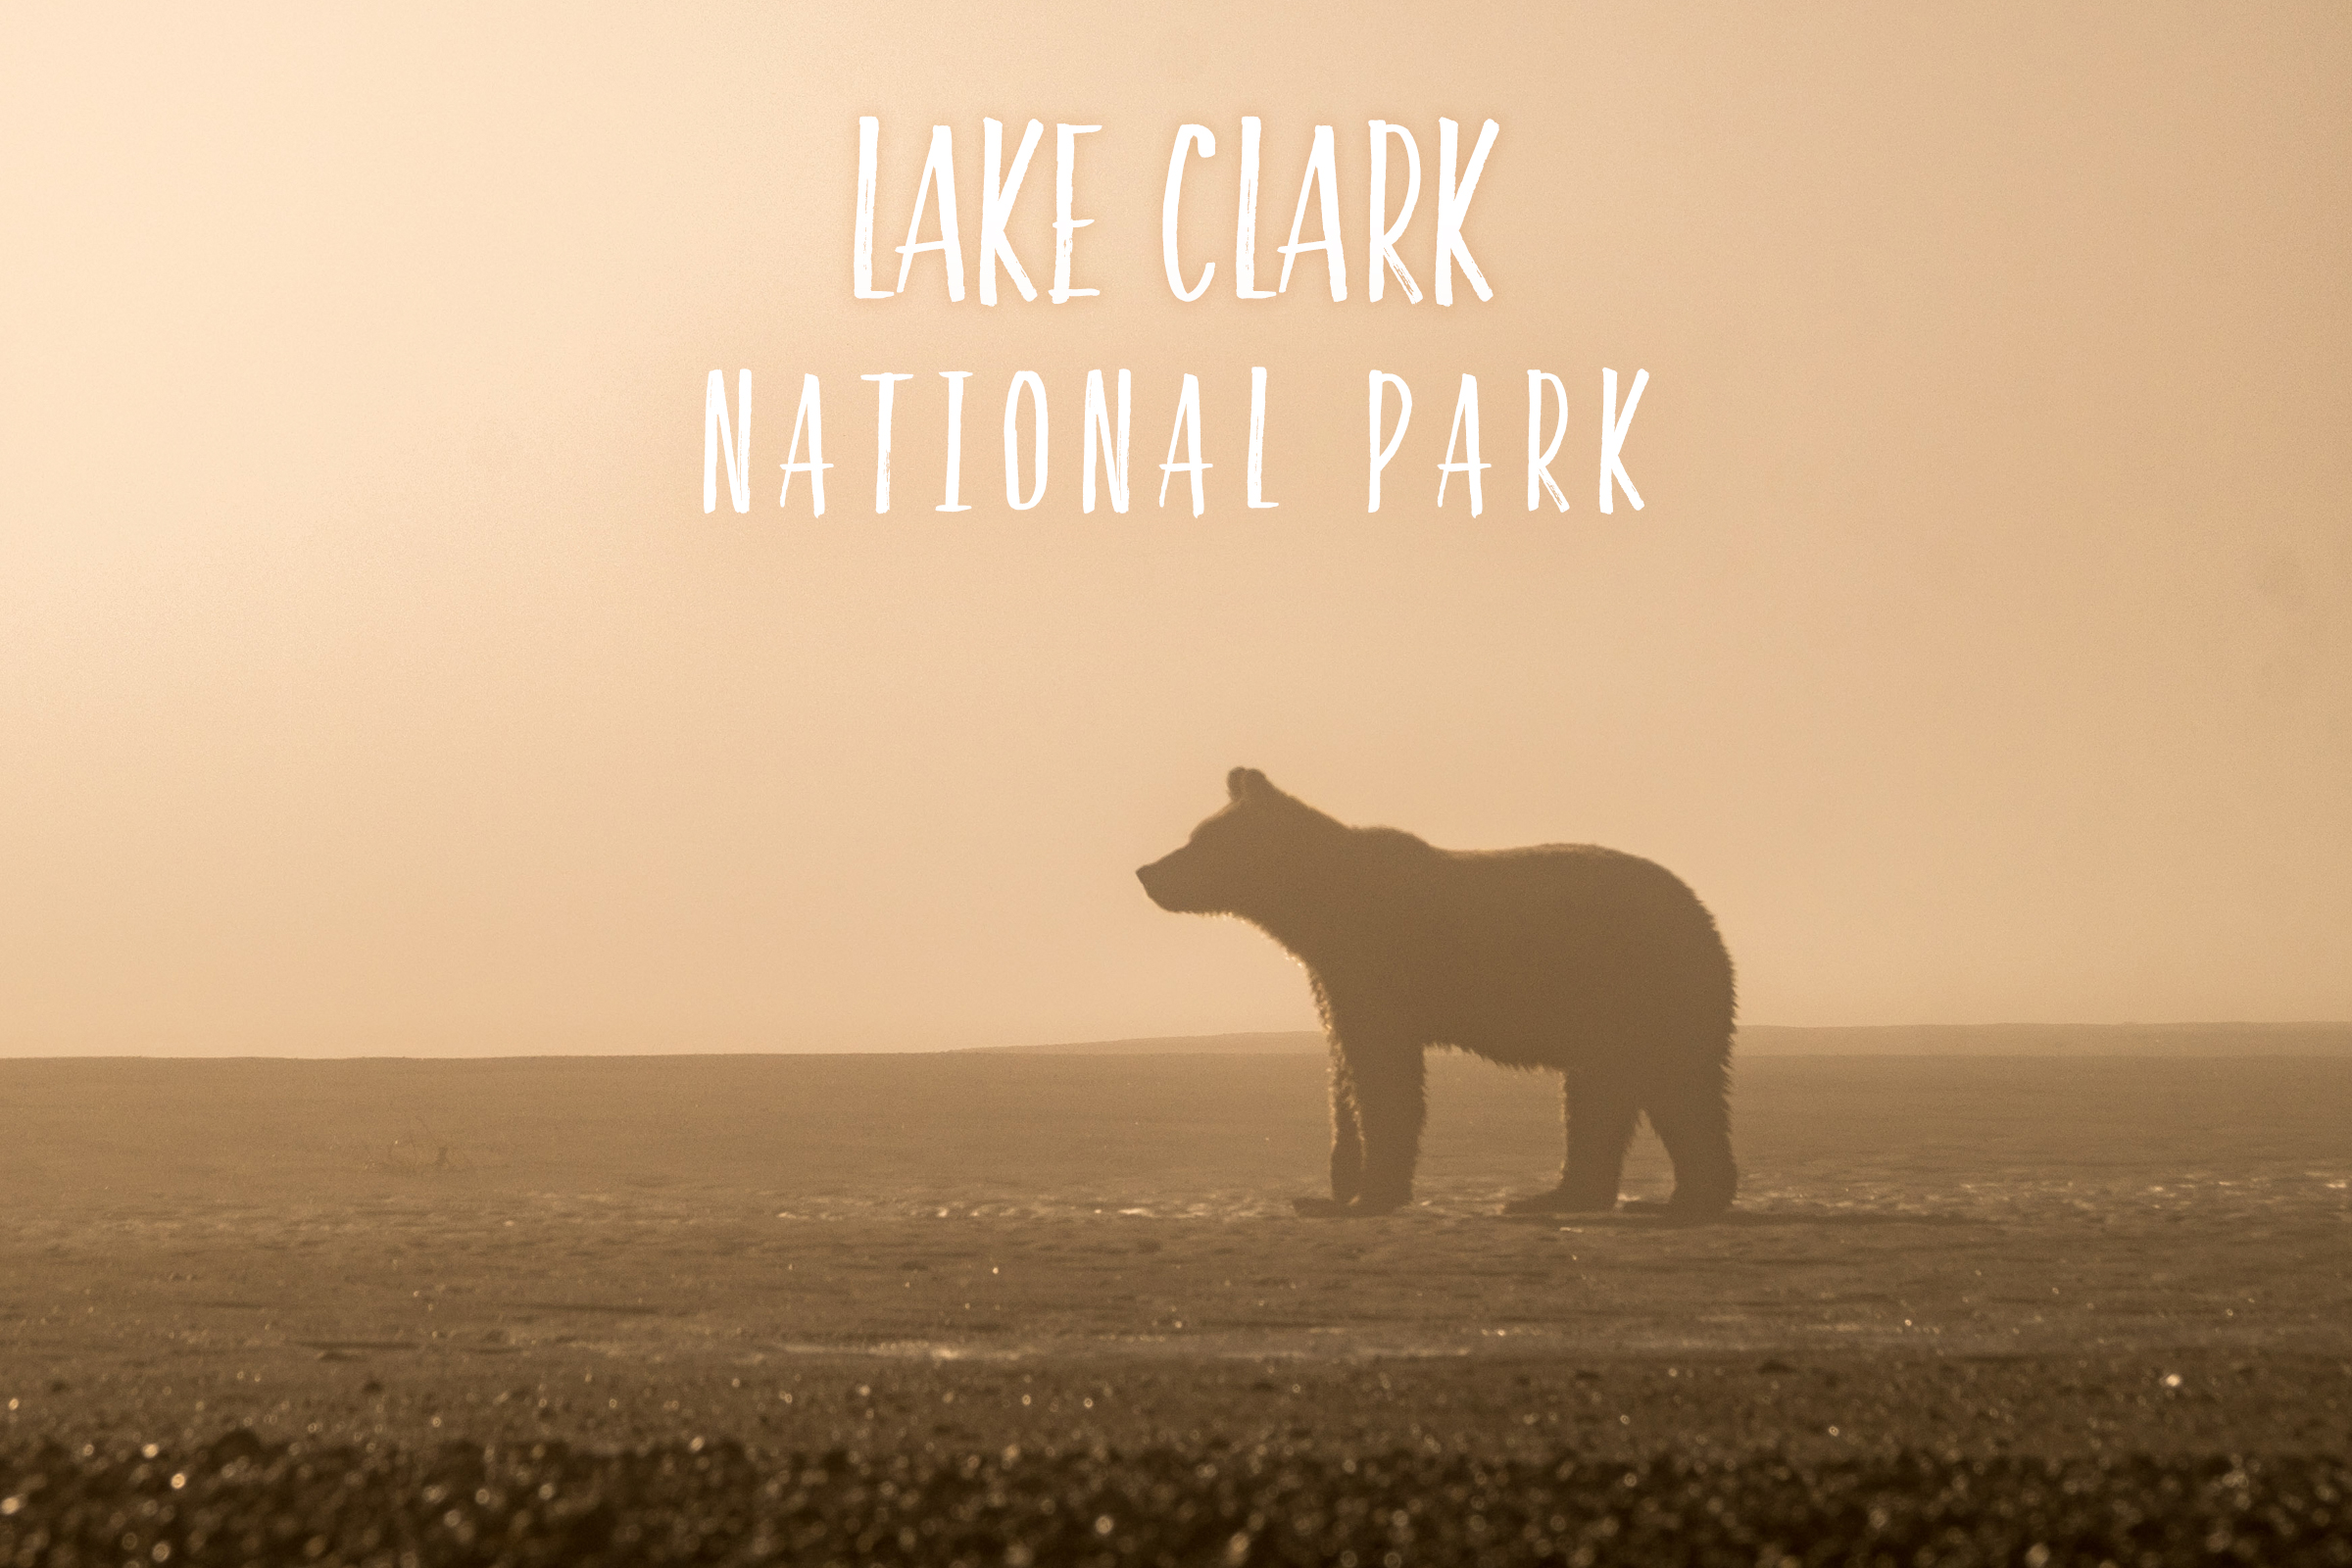 59in52_np-page_Lake-Clark.jpg